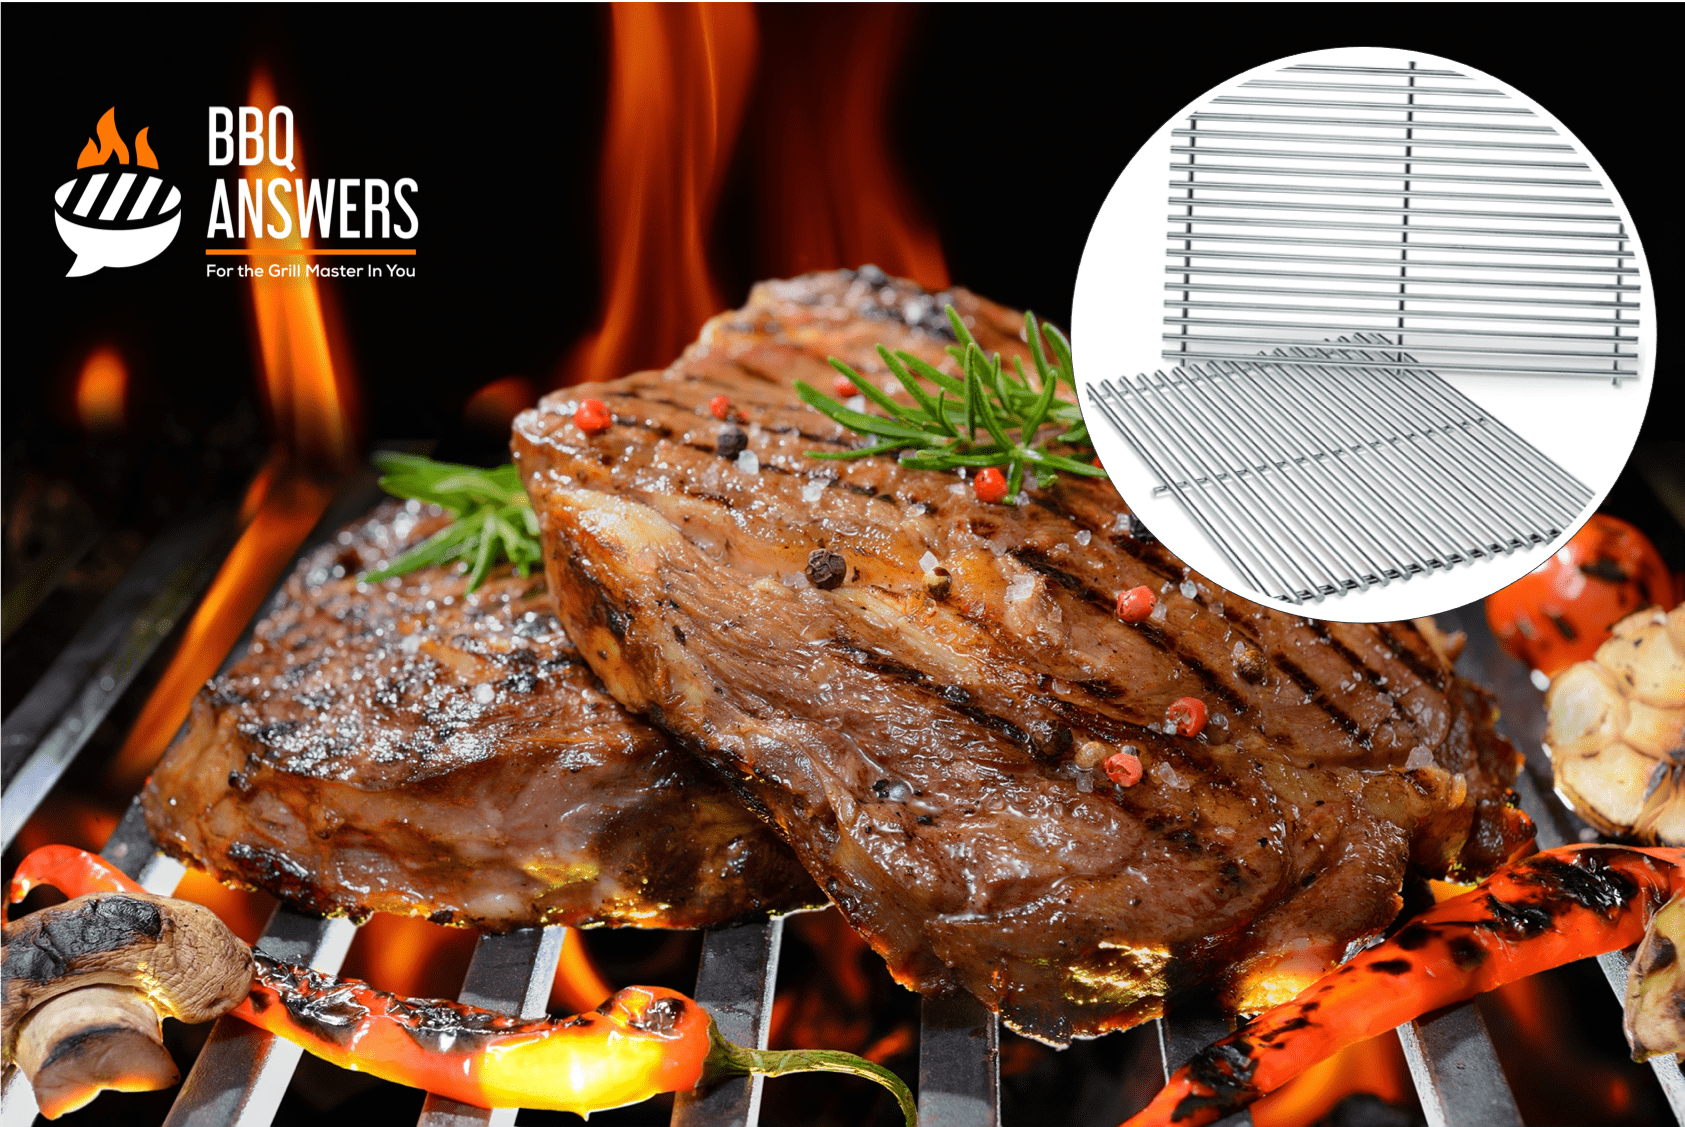 Stainless Steel Grill Grates | BBQanswers